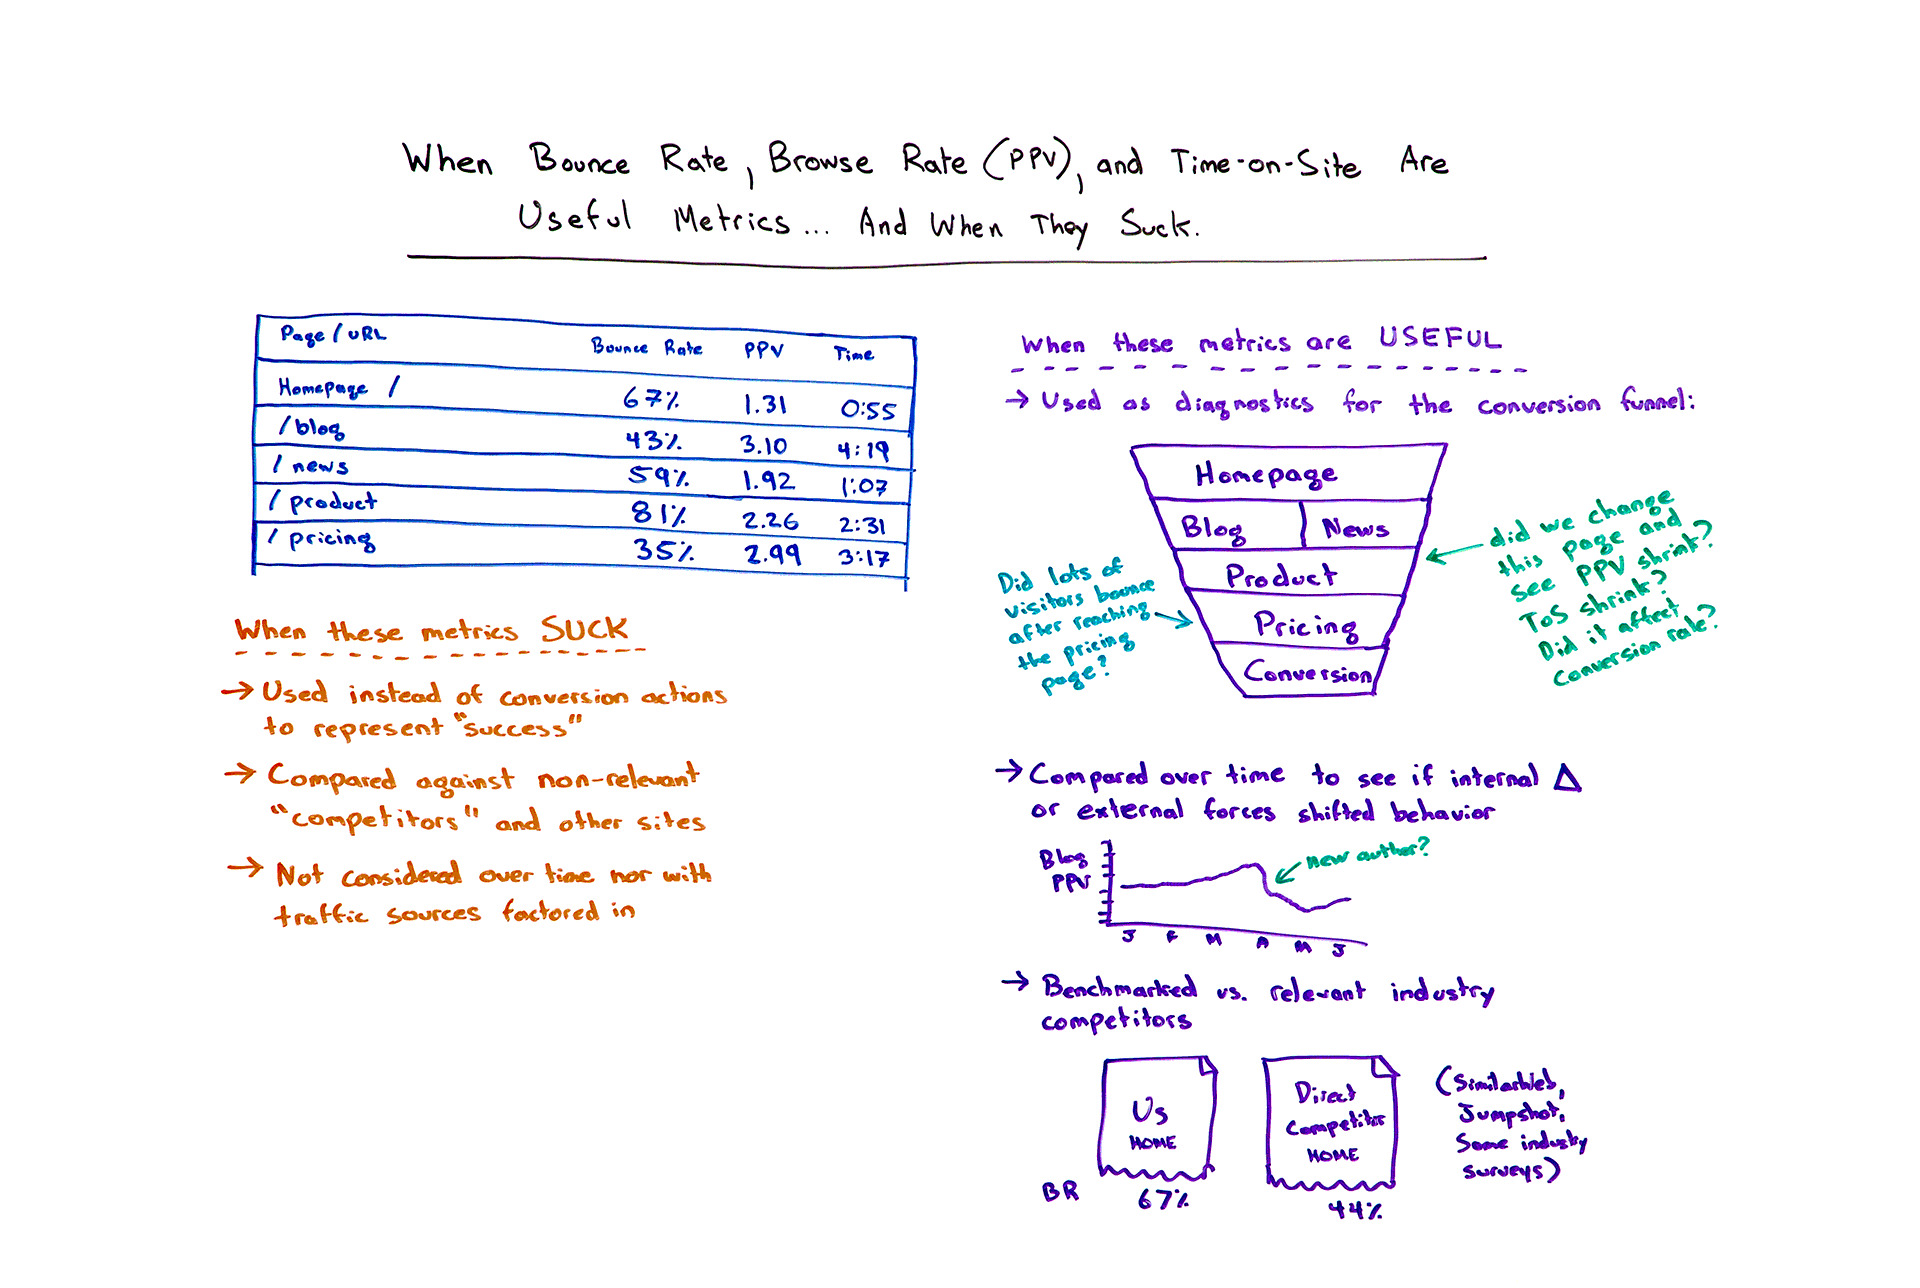 When bounce rate browse rate and ppc are useful metrics and when they suck